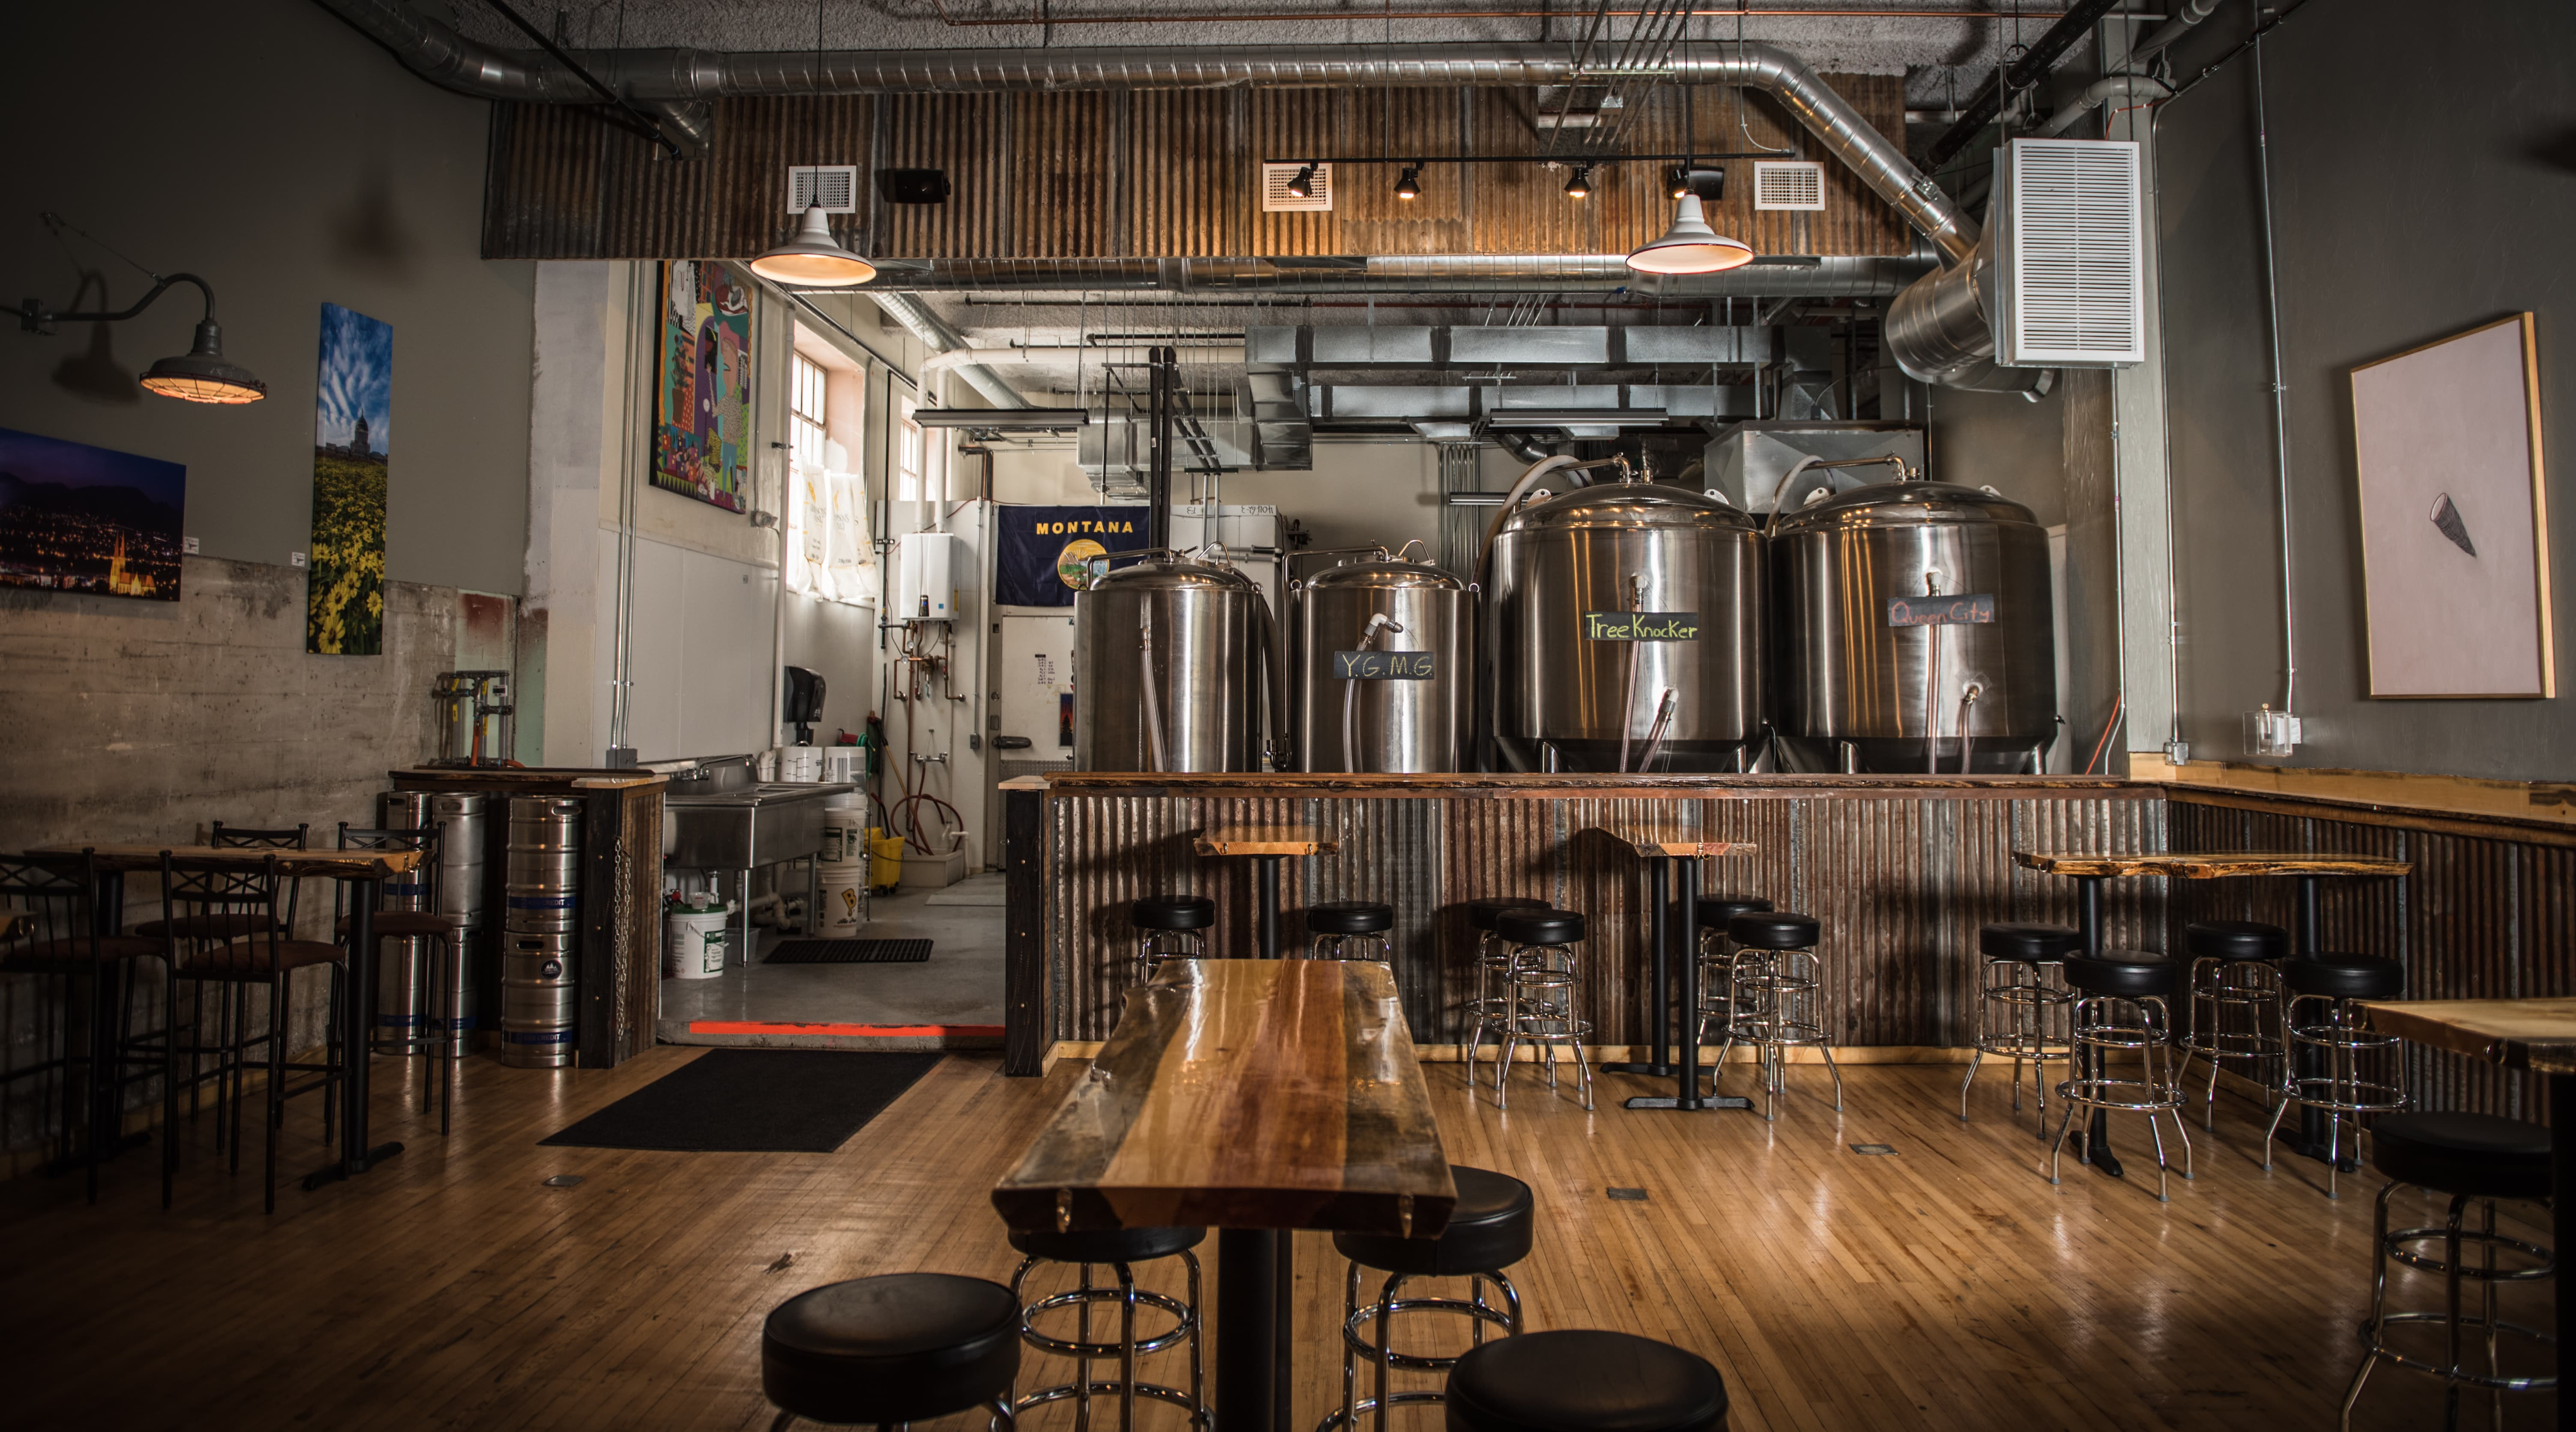 ten mile creek brewing a somewhat organized community